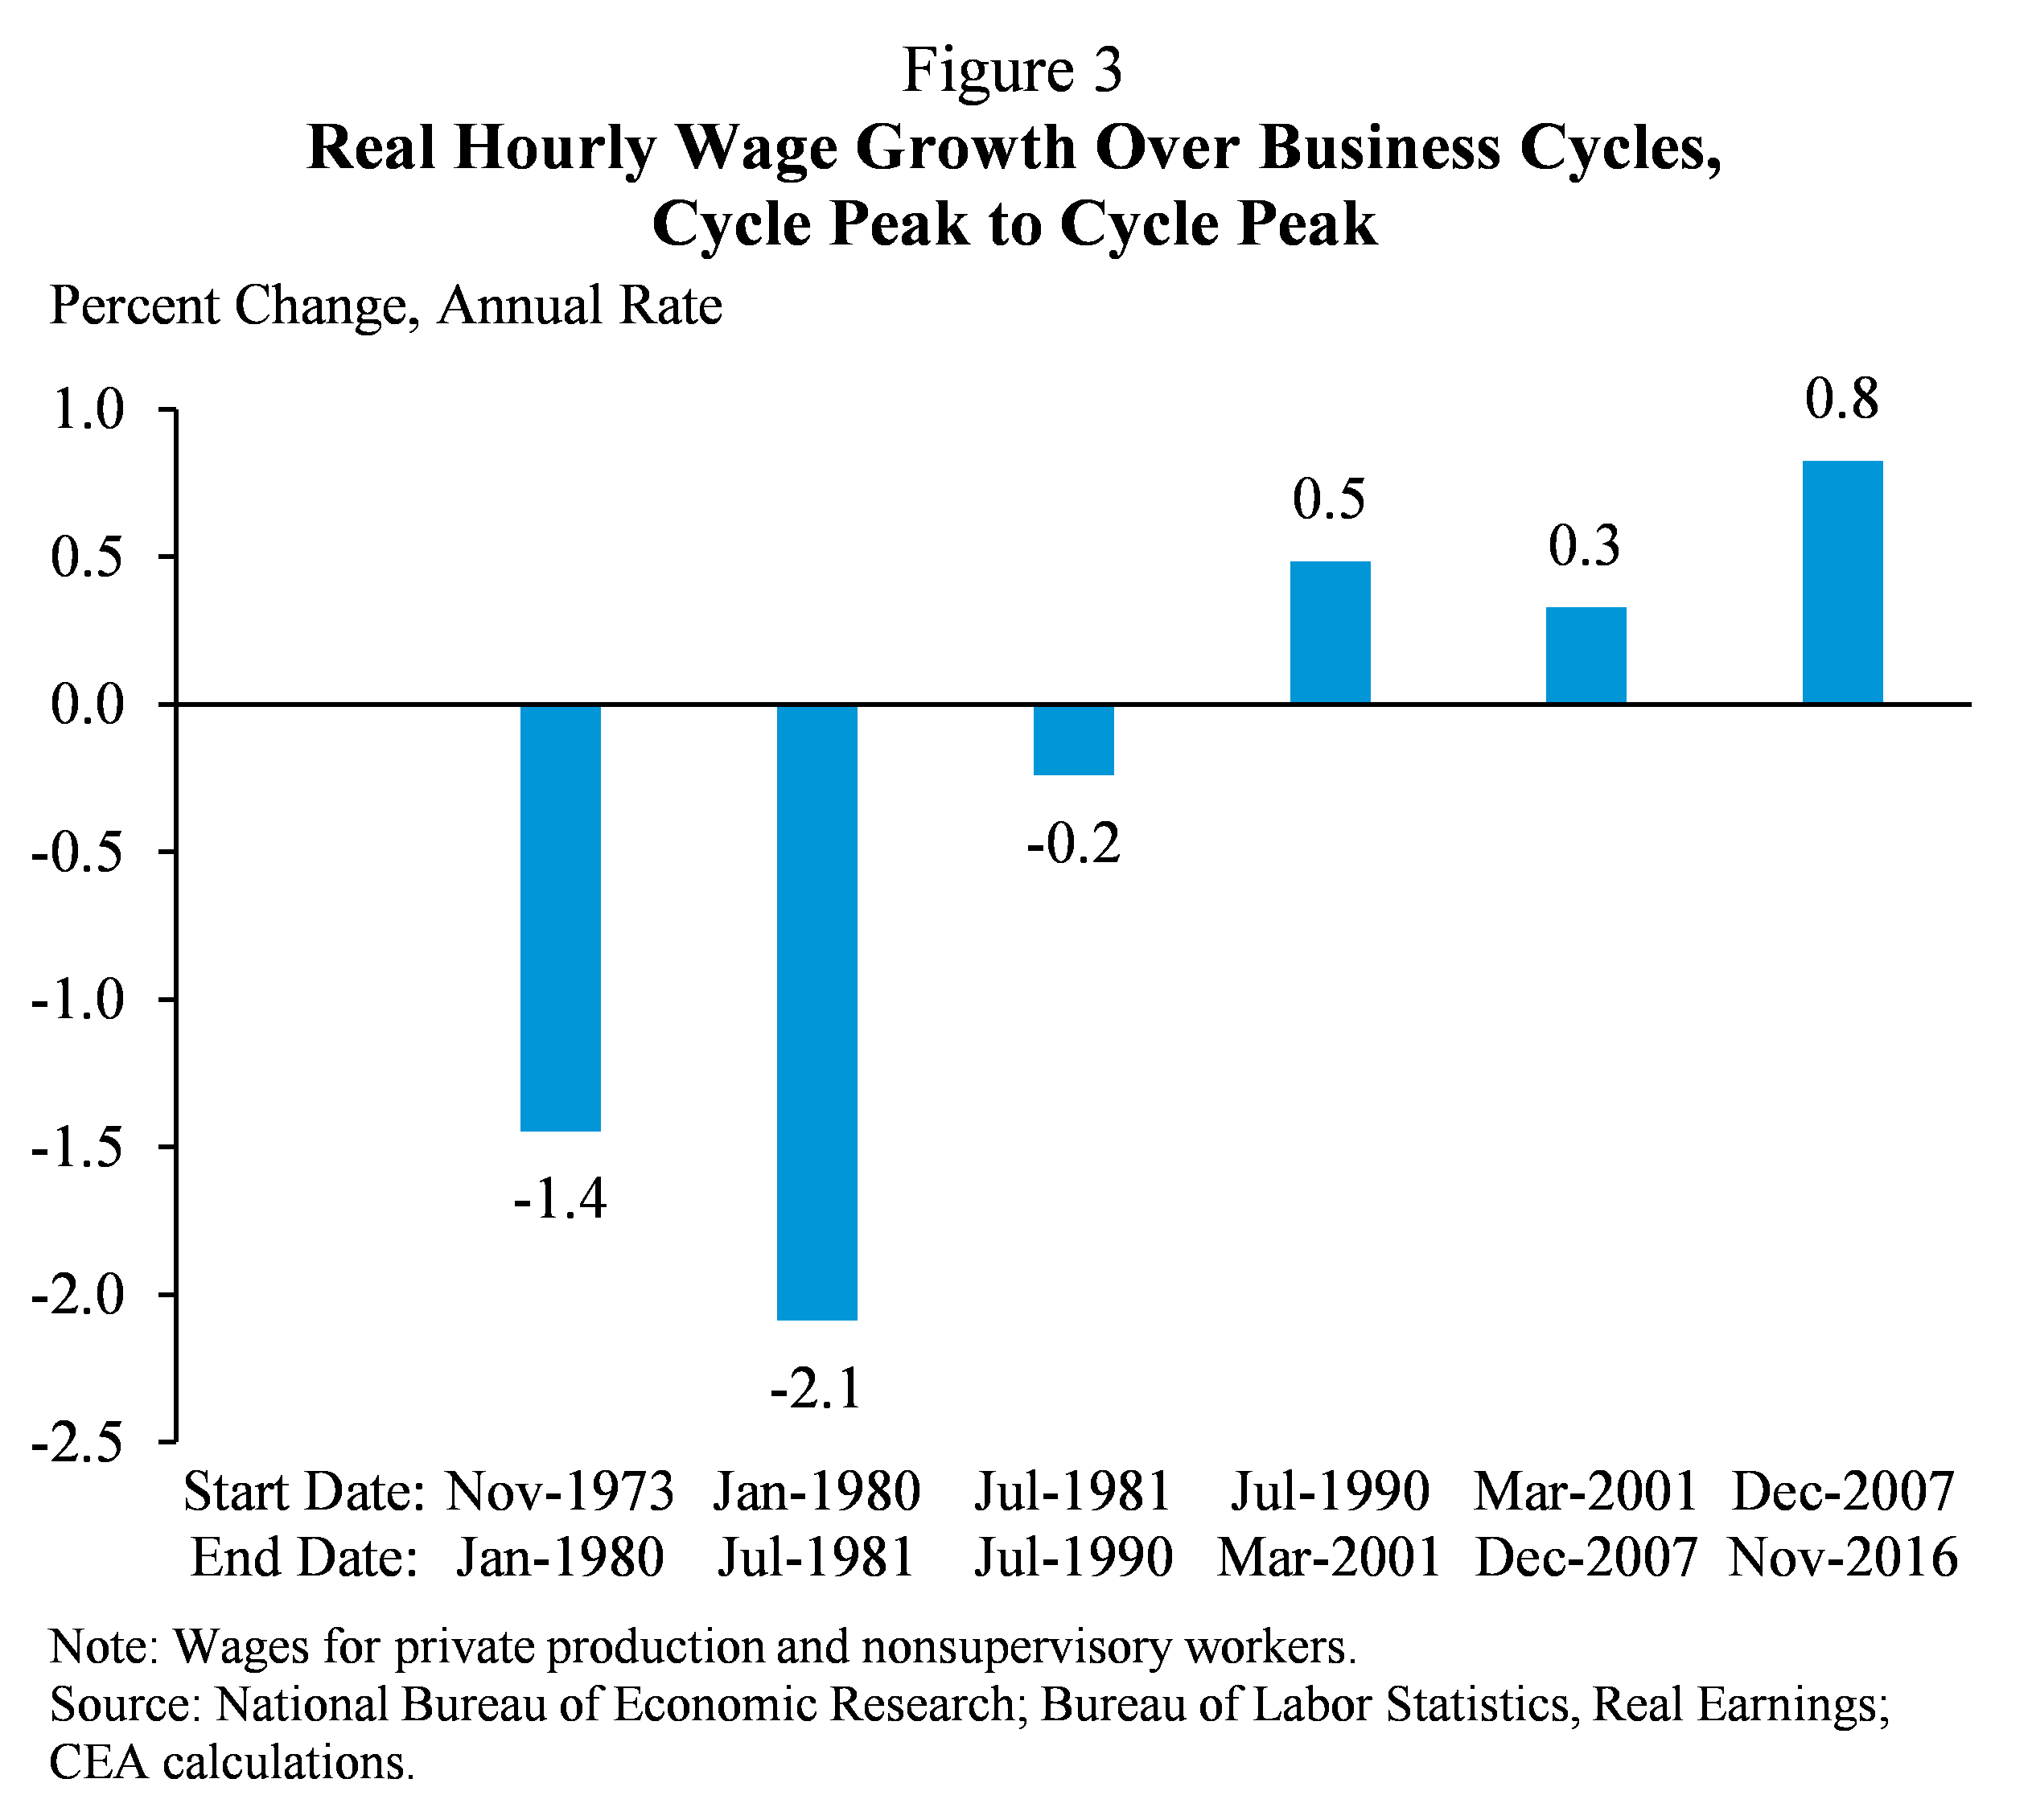 Figure 3. Real Hourly Wage Growth Over Business Cycles, Cycle Peak to Cycle Peak